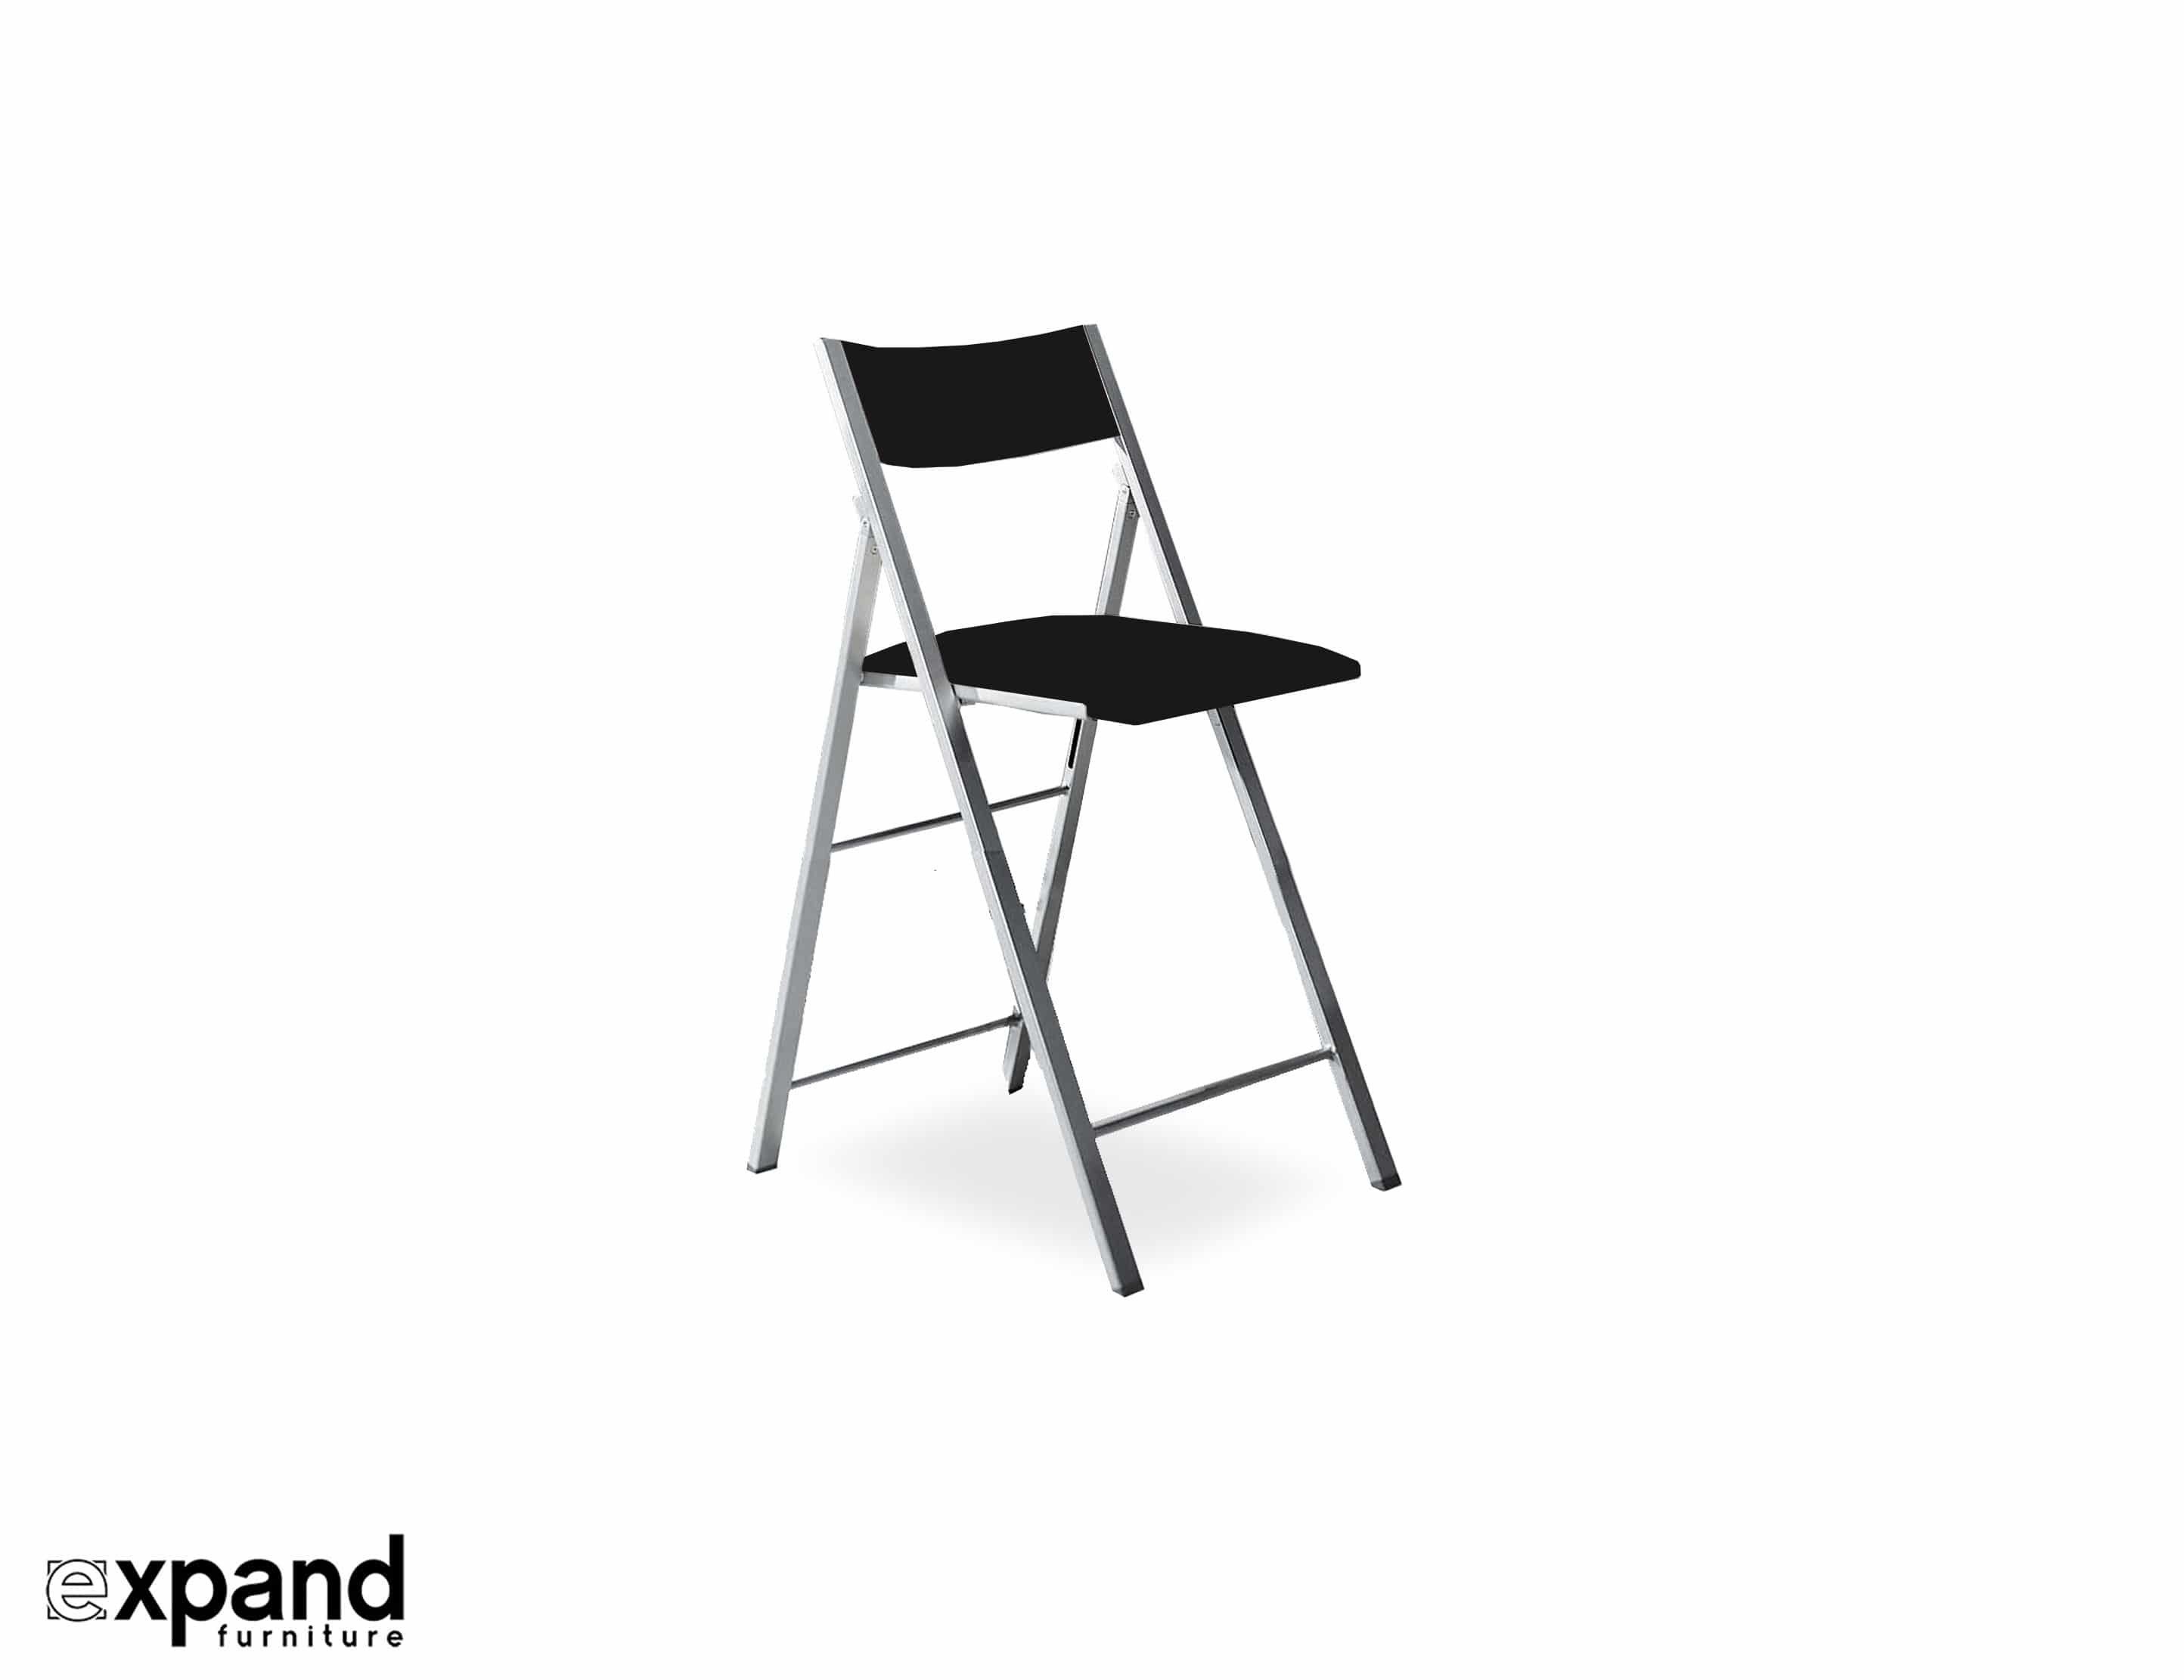 Sensational Nano Counter Height Tall Folding Chair Set Of 4 Pabps2019 Chair Design Images Pabps2019Com